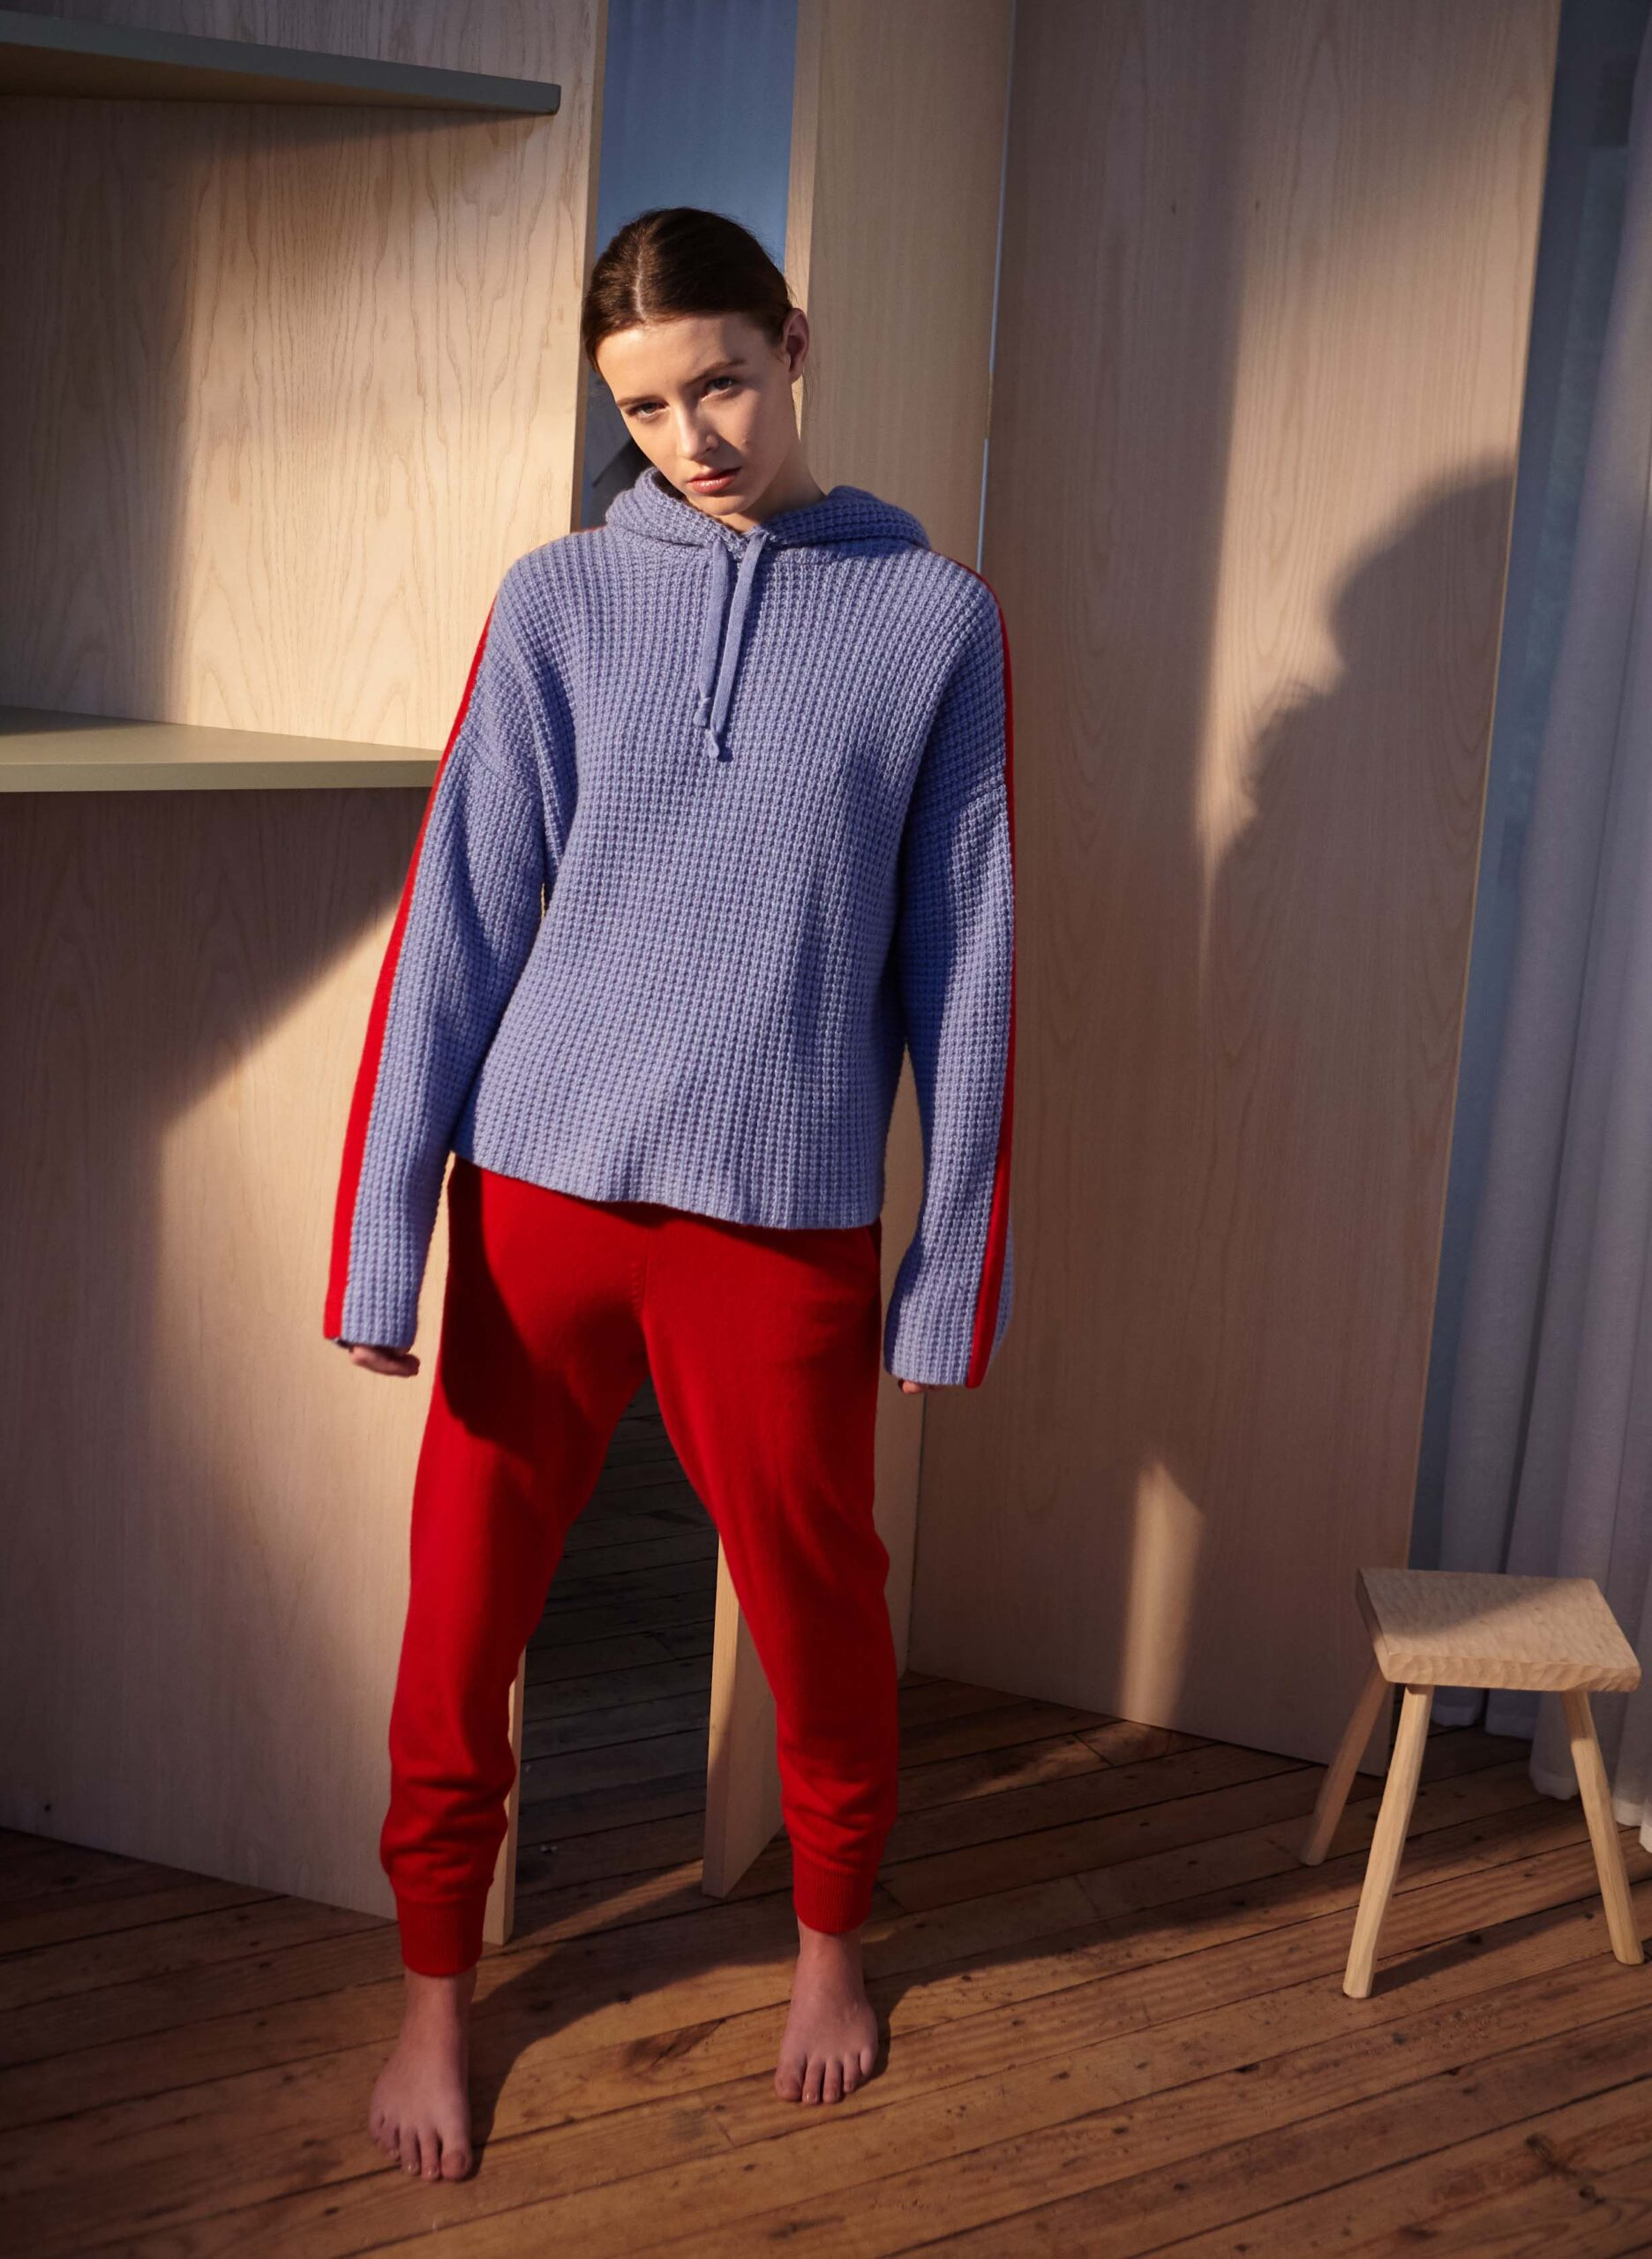 Model wearing purple sweatshirt and red track pants